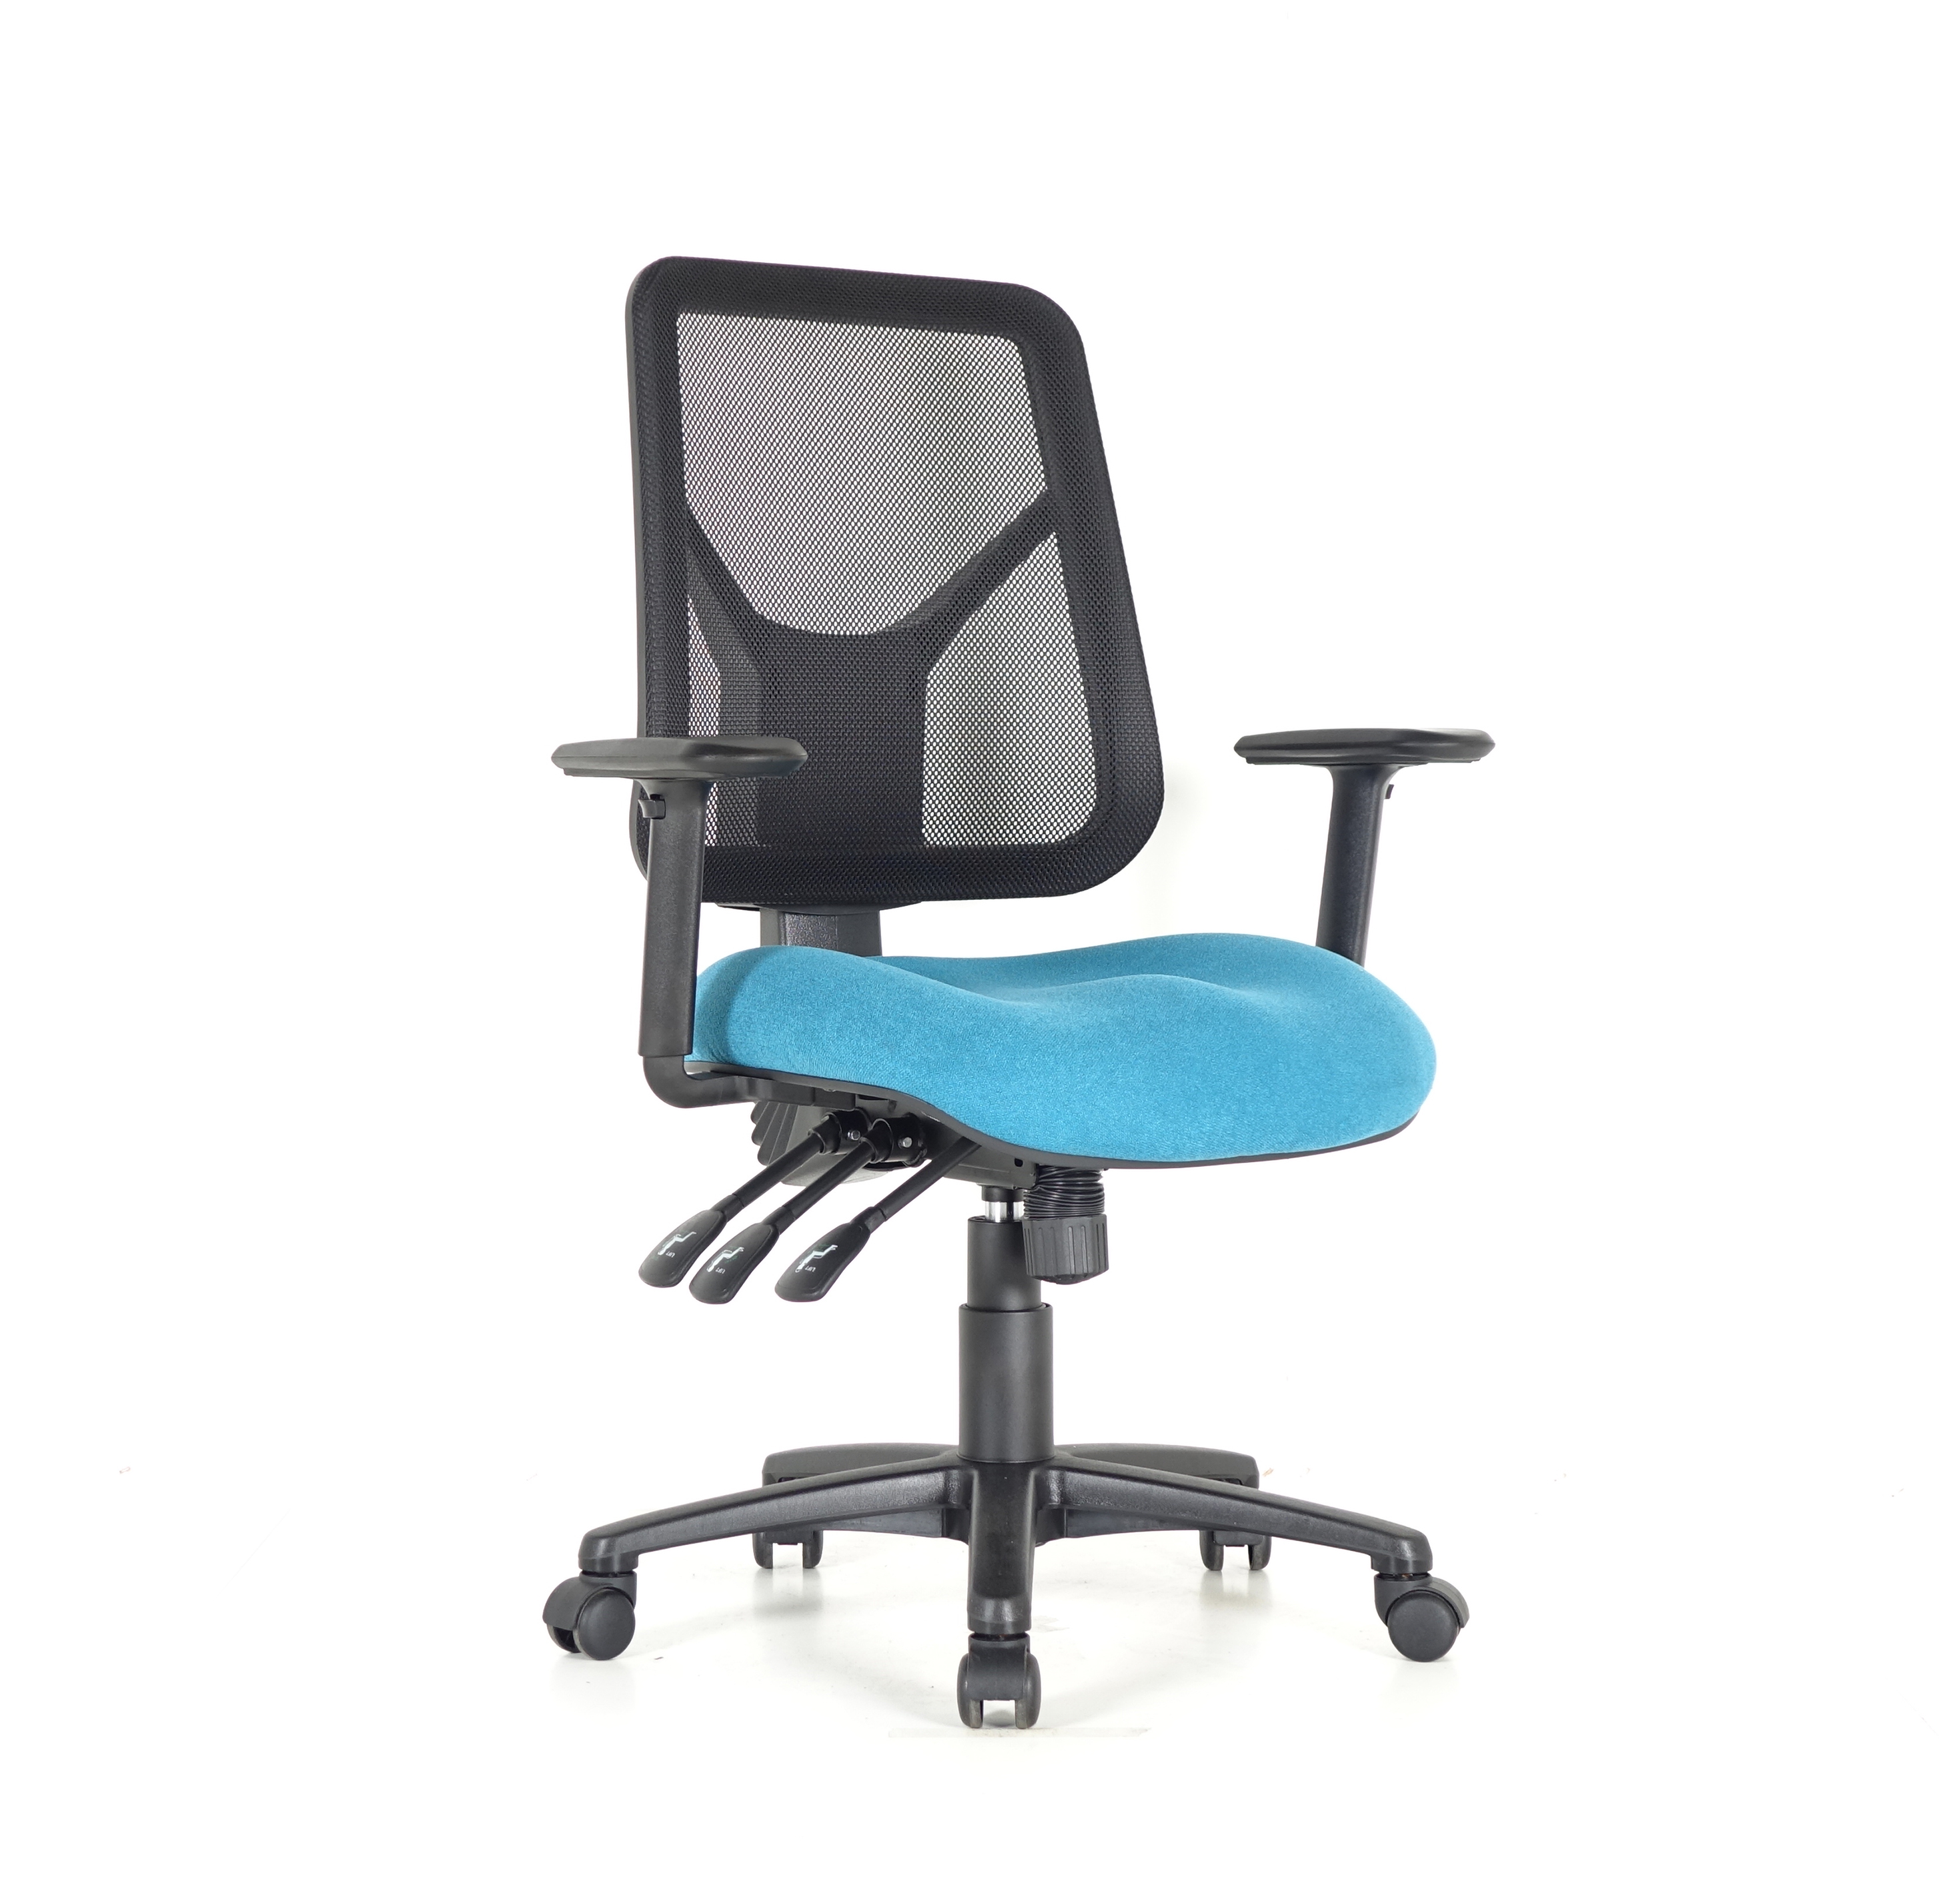 Officeworks Ergonomic Chairs Regas Office Chairs Brisbane Checknows Co